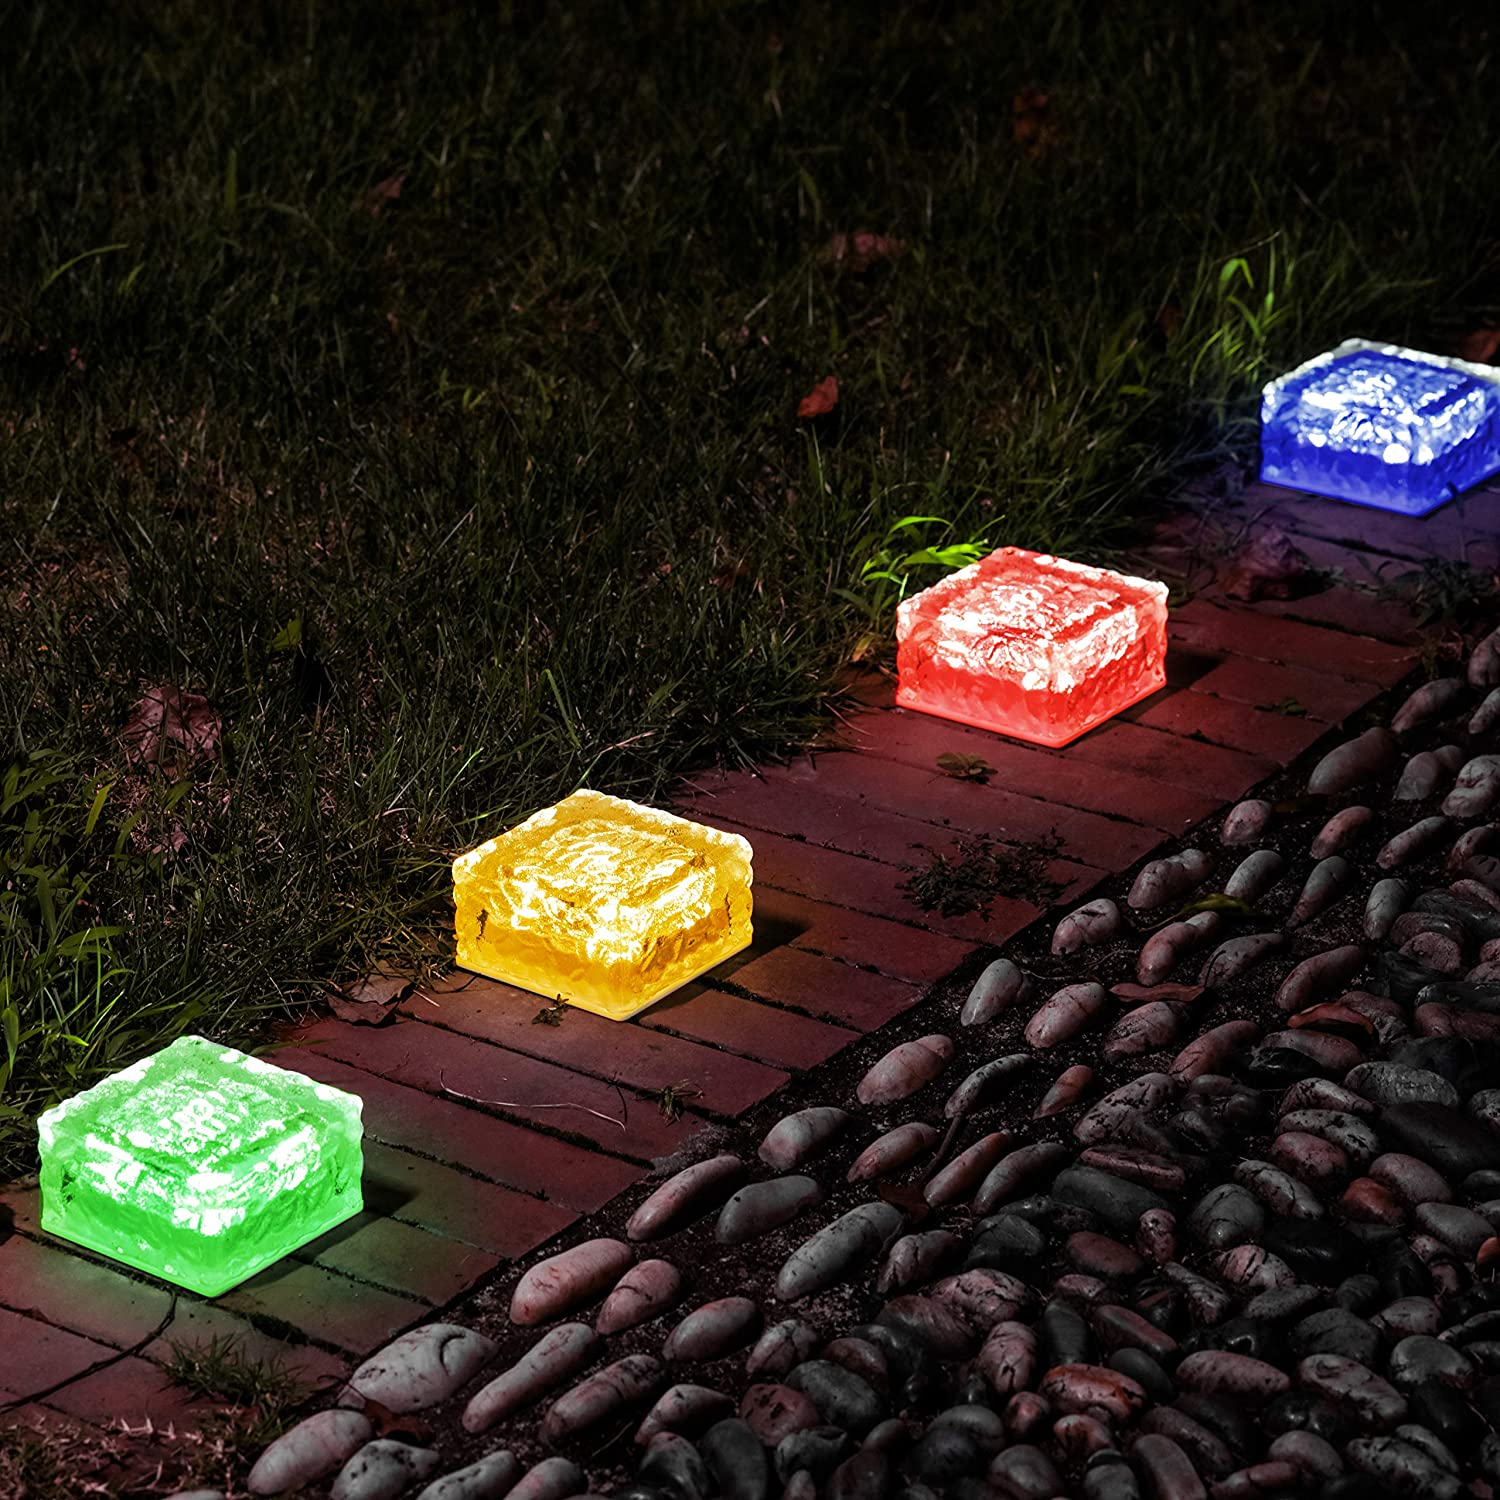 Christmas Outdoor Decorations Lawn, Solar Garden Lights Outdoor Decorative Glass Brick Ice Cube LED Light for Pathway, Driveway, Lanscape, Backyard, Patio (Color Changing)